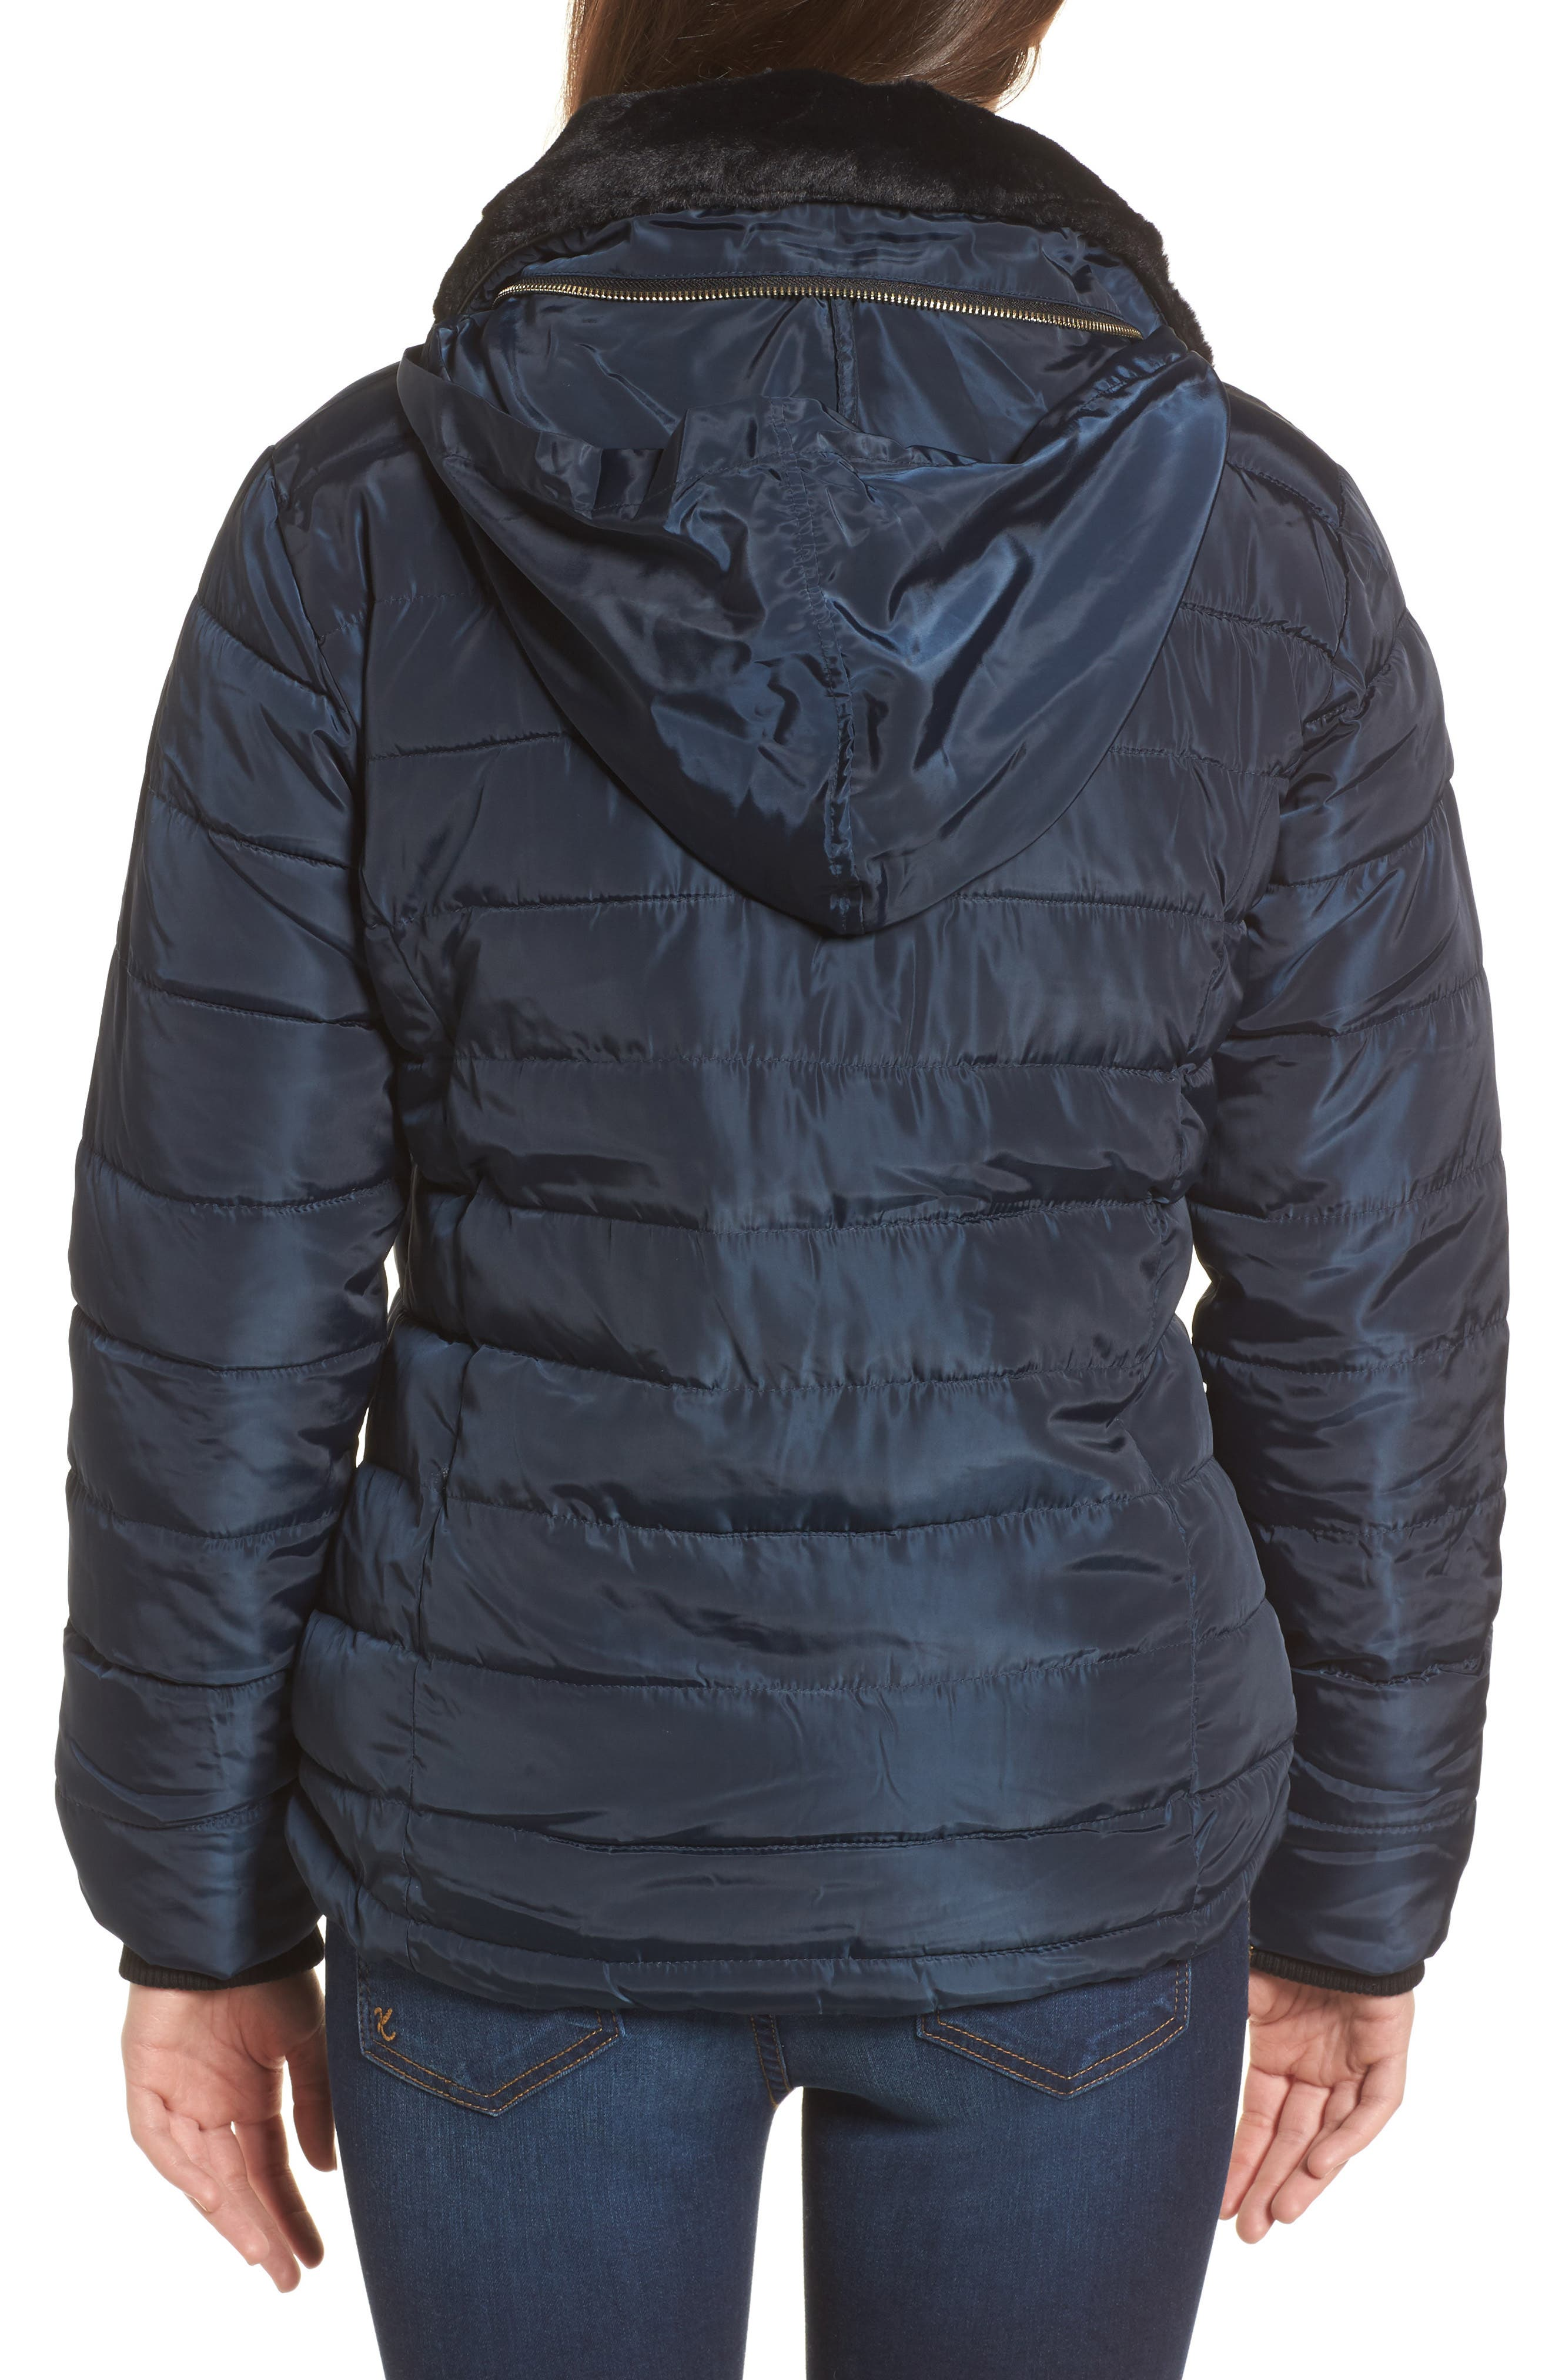 Puffer Jacket with Faux Fur Collar Lining,                             Alternate thumbnail 2, color,                             400